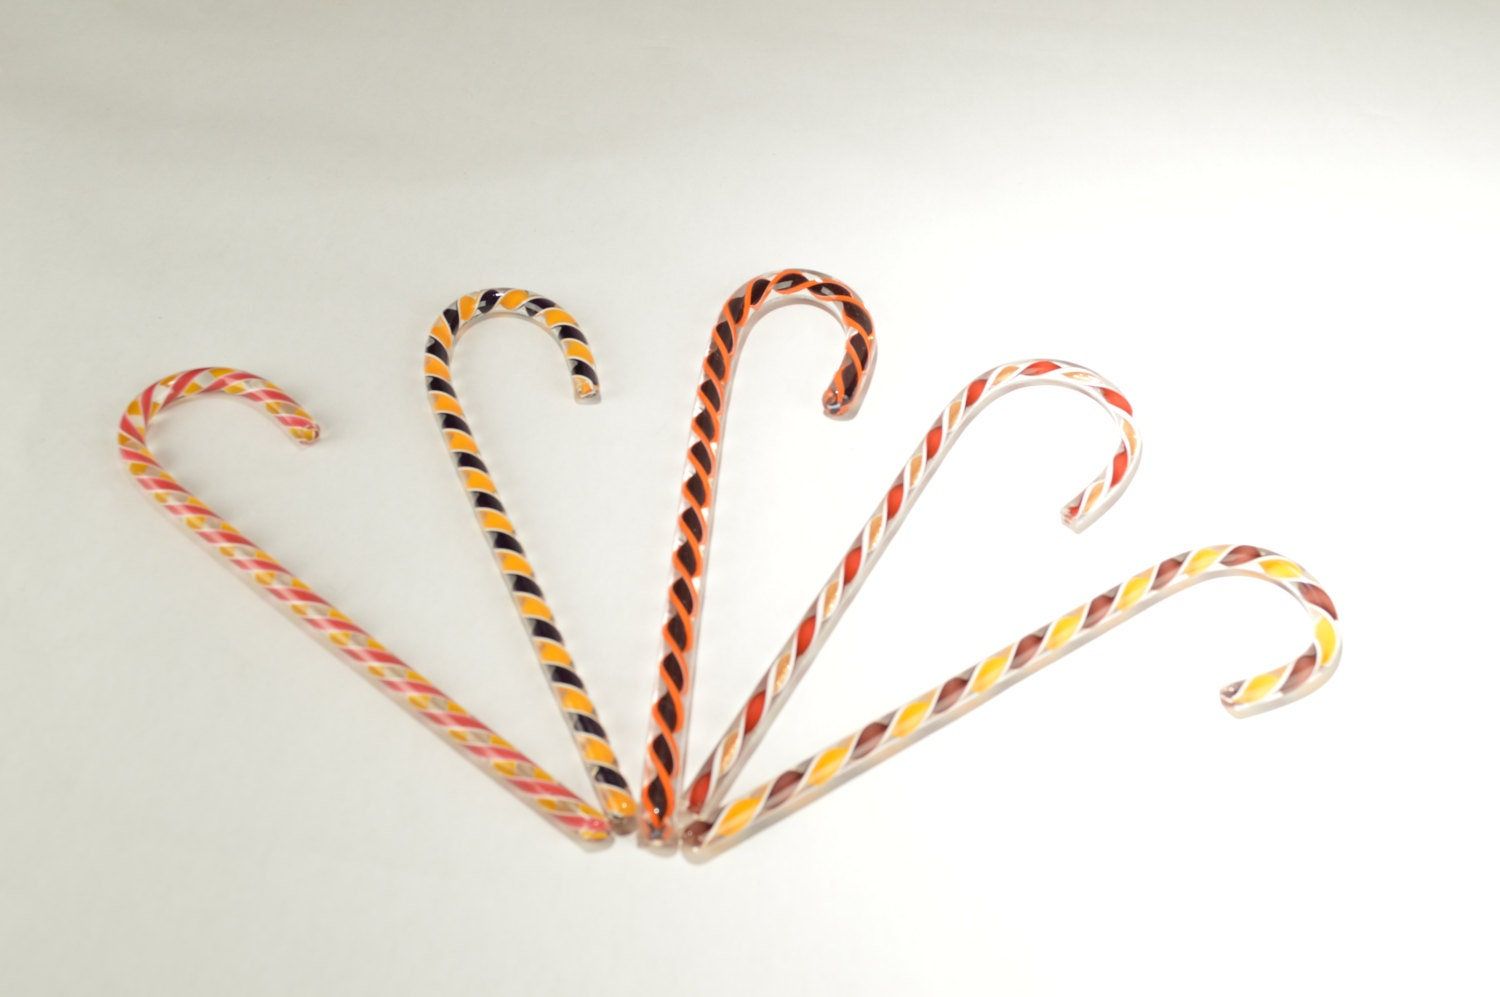 Hand blown glass candy canes